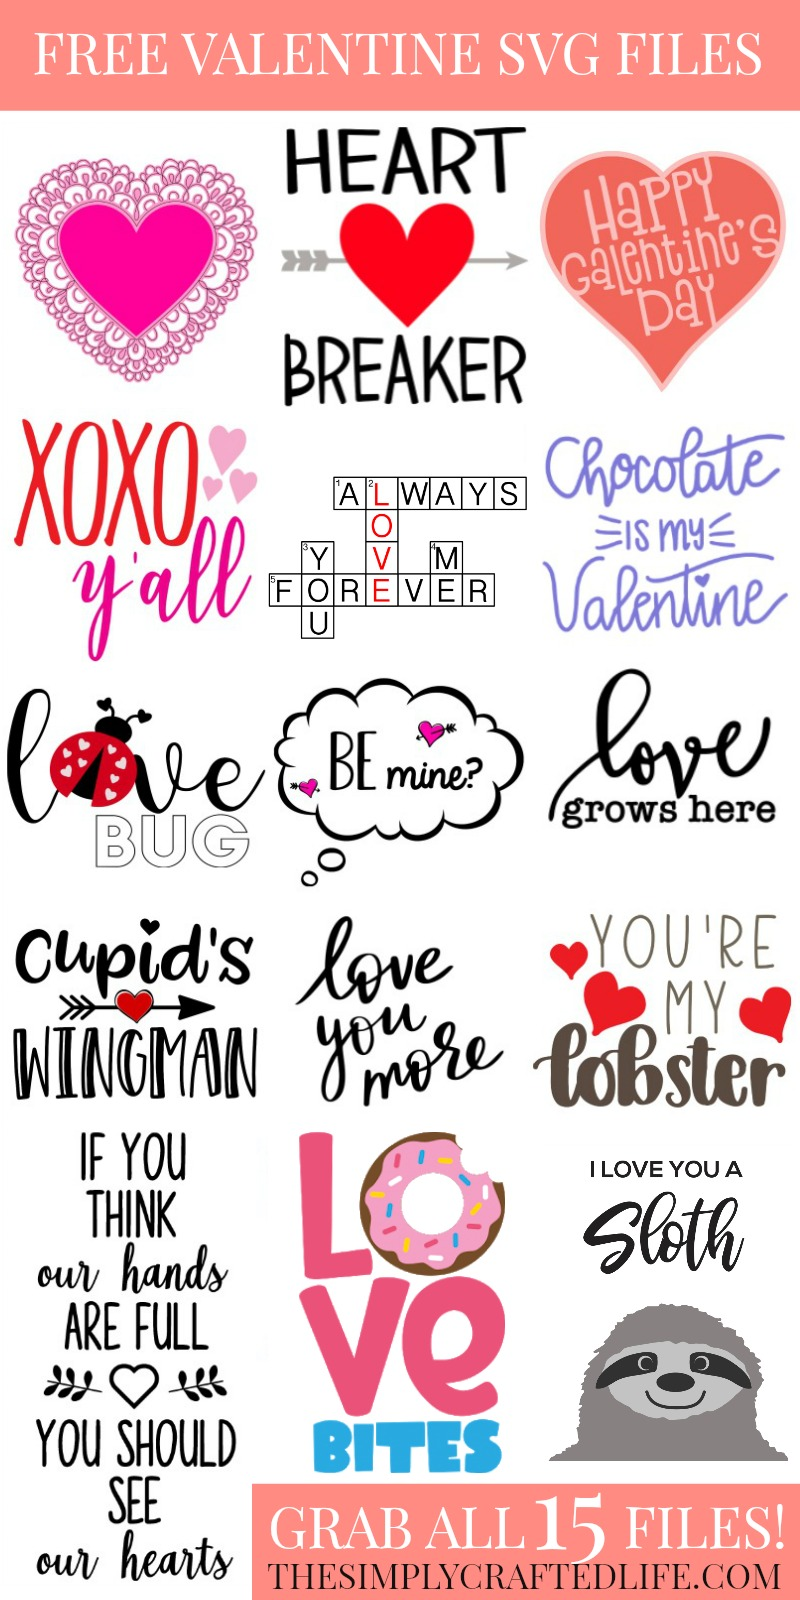 YOU'RE MY LOBSTER VALENTINE DAY SVG